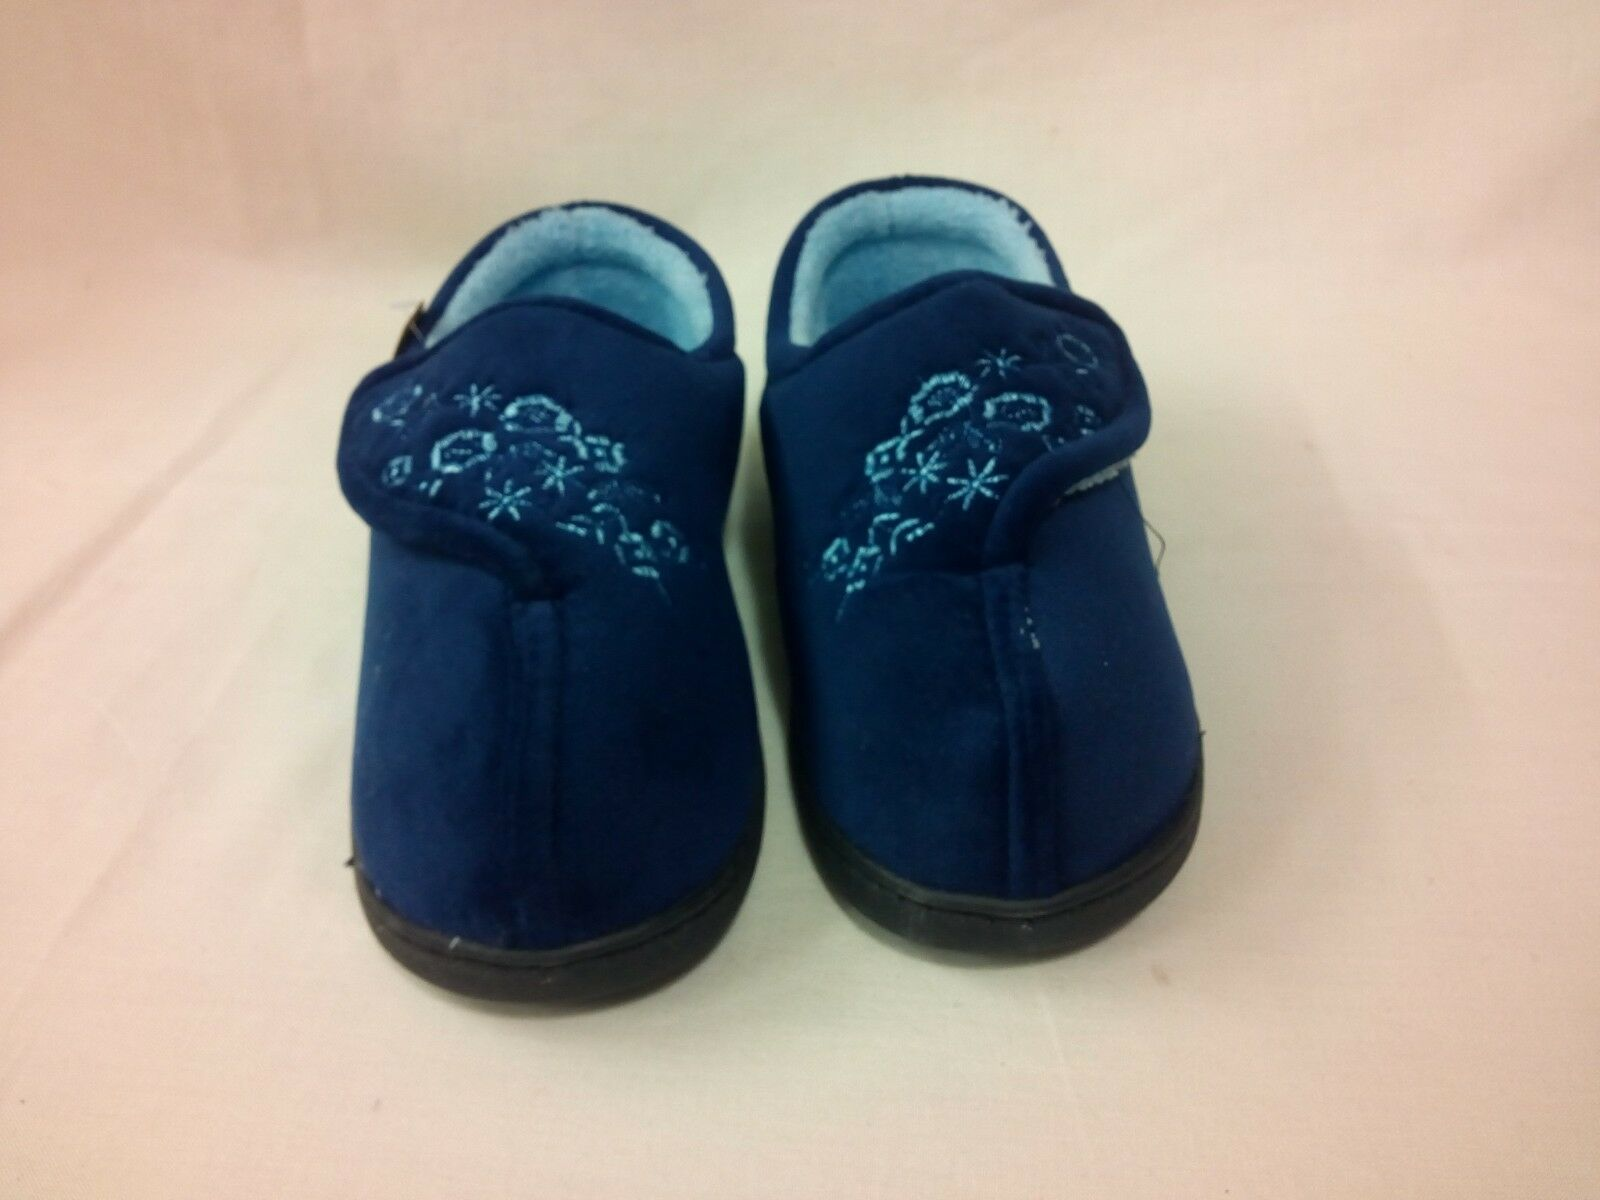 NEW PRINT WOMENS OPEN FRONT FLORAL PRINT NEW FUR WOMENS SLIPPERS COMFORT SHOES SZ 99ea3a